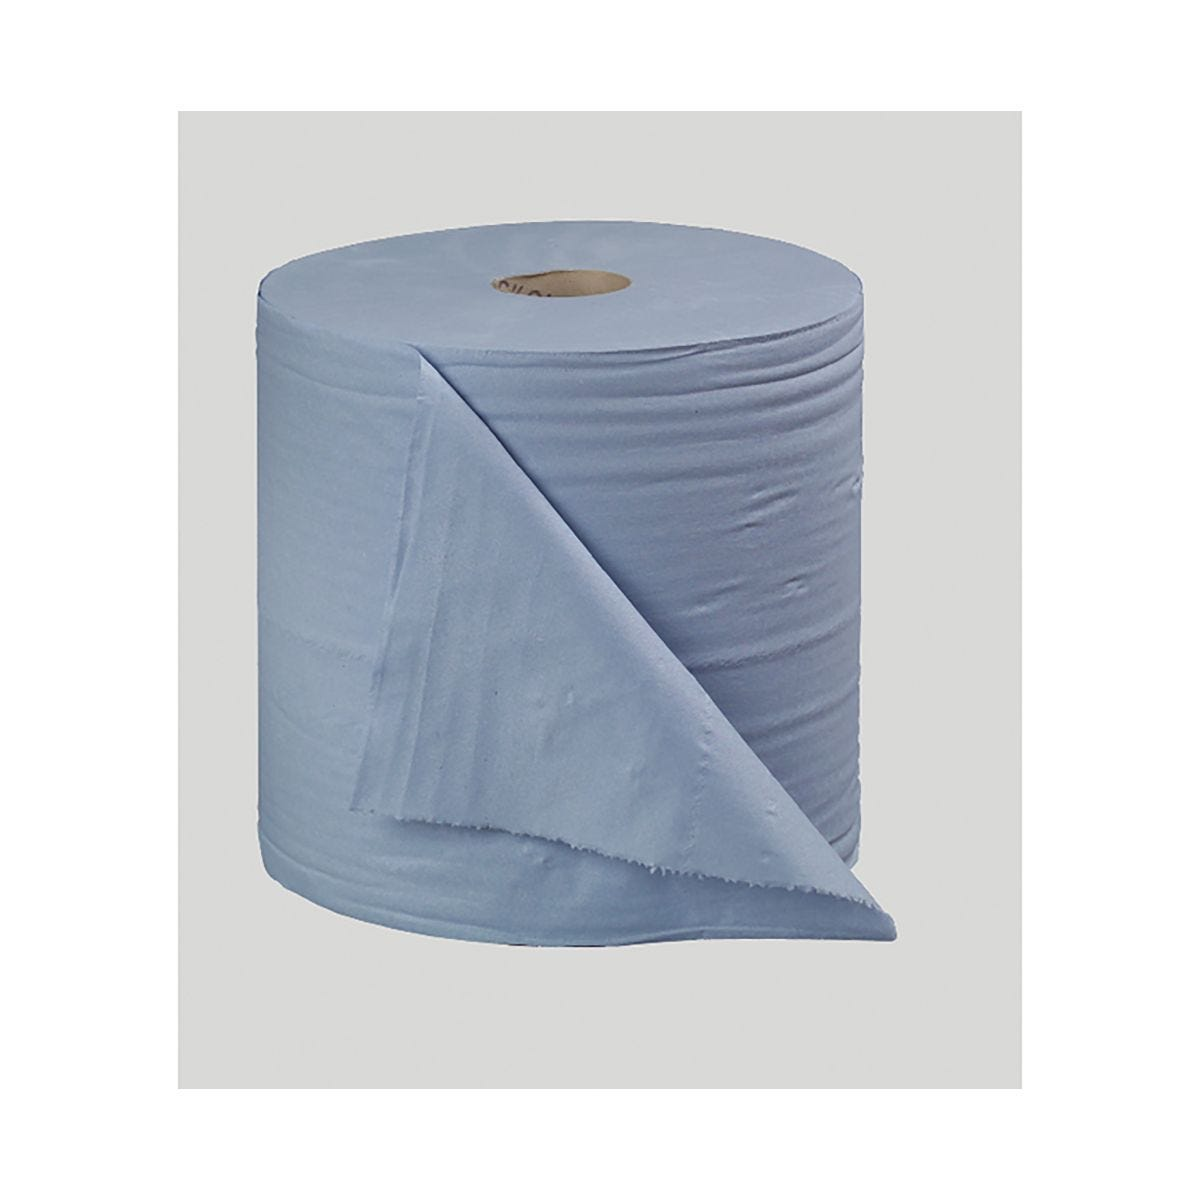 Image of 2Work Blue Bumper 2-Ply Paper Roll 270mm x 400m Pack of 2